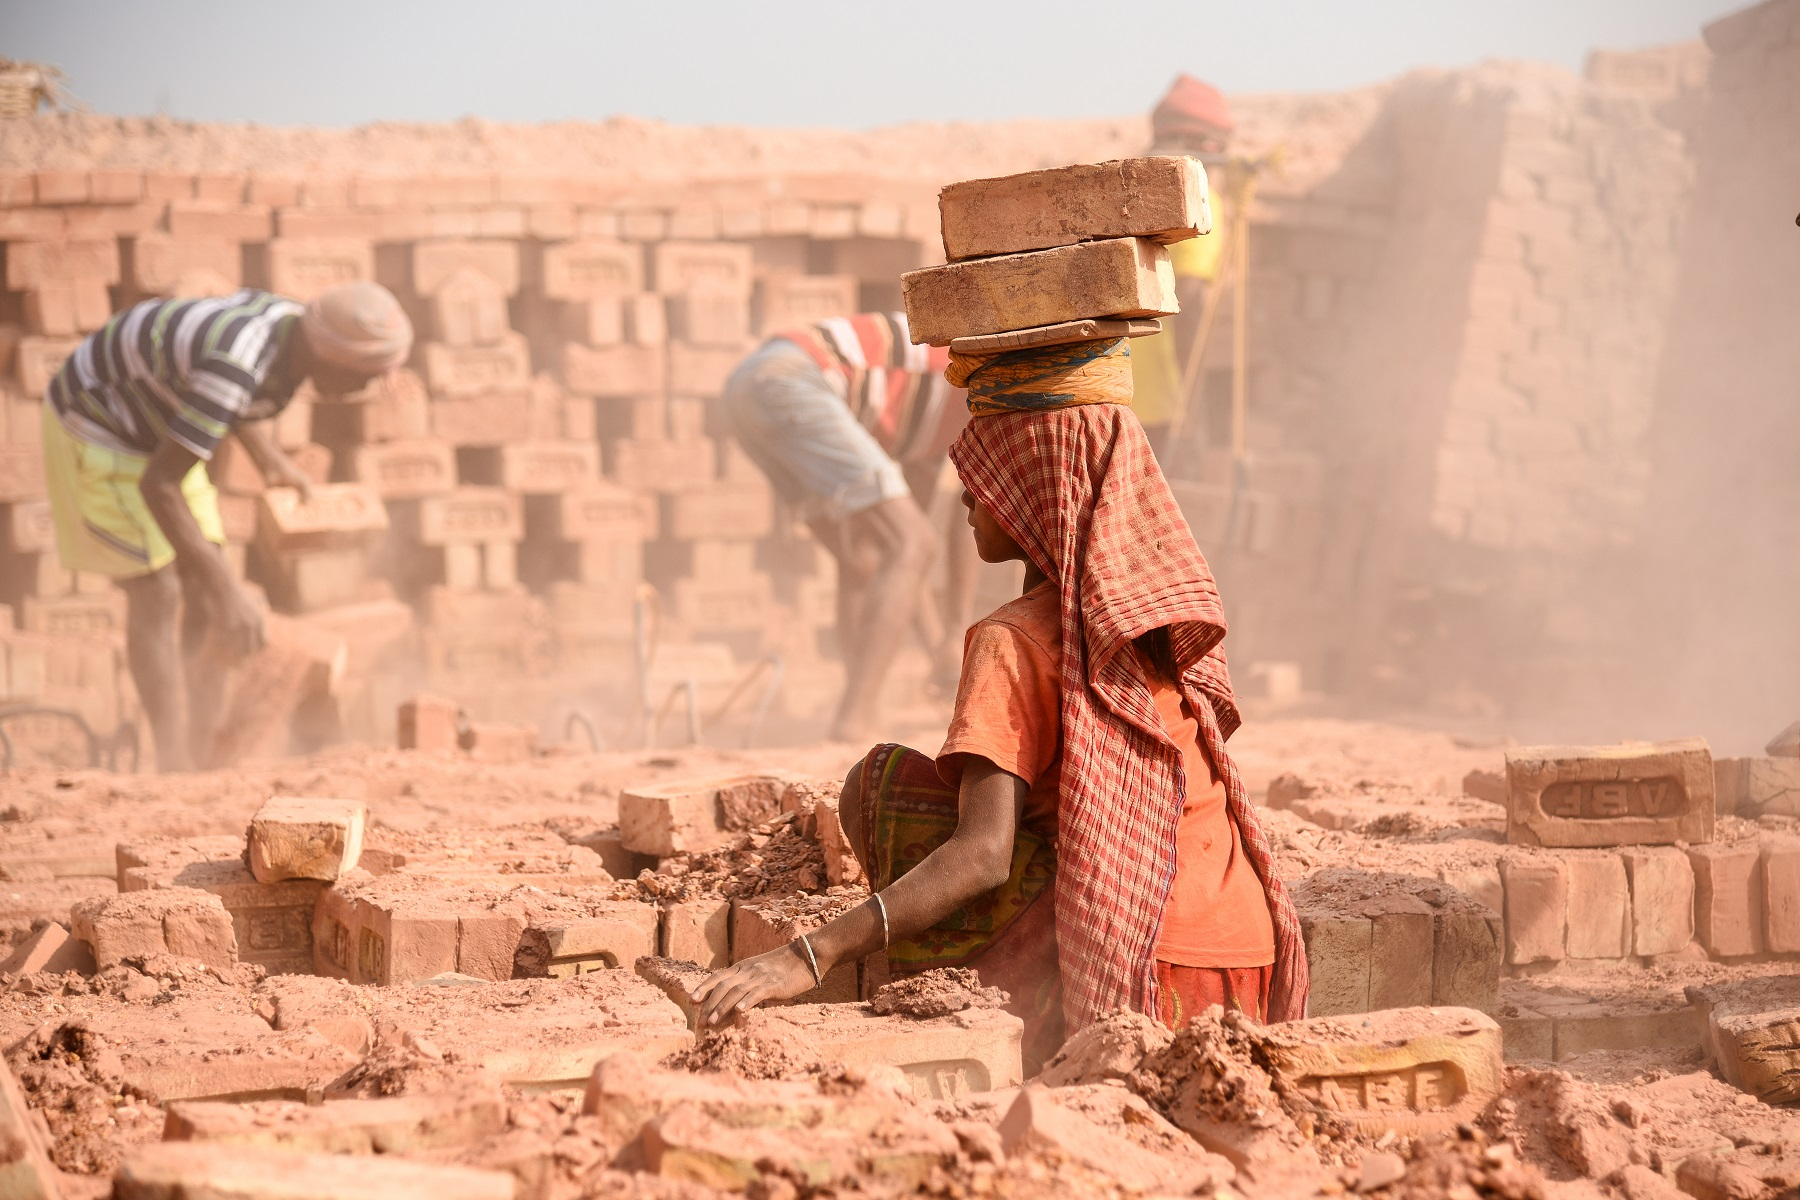 An Indian woman labourer with bricks on her head at the brick kiln